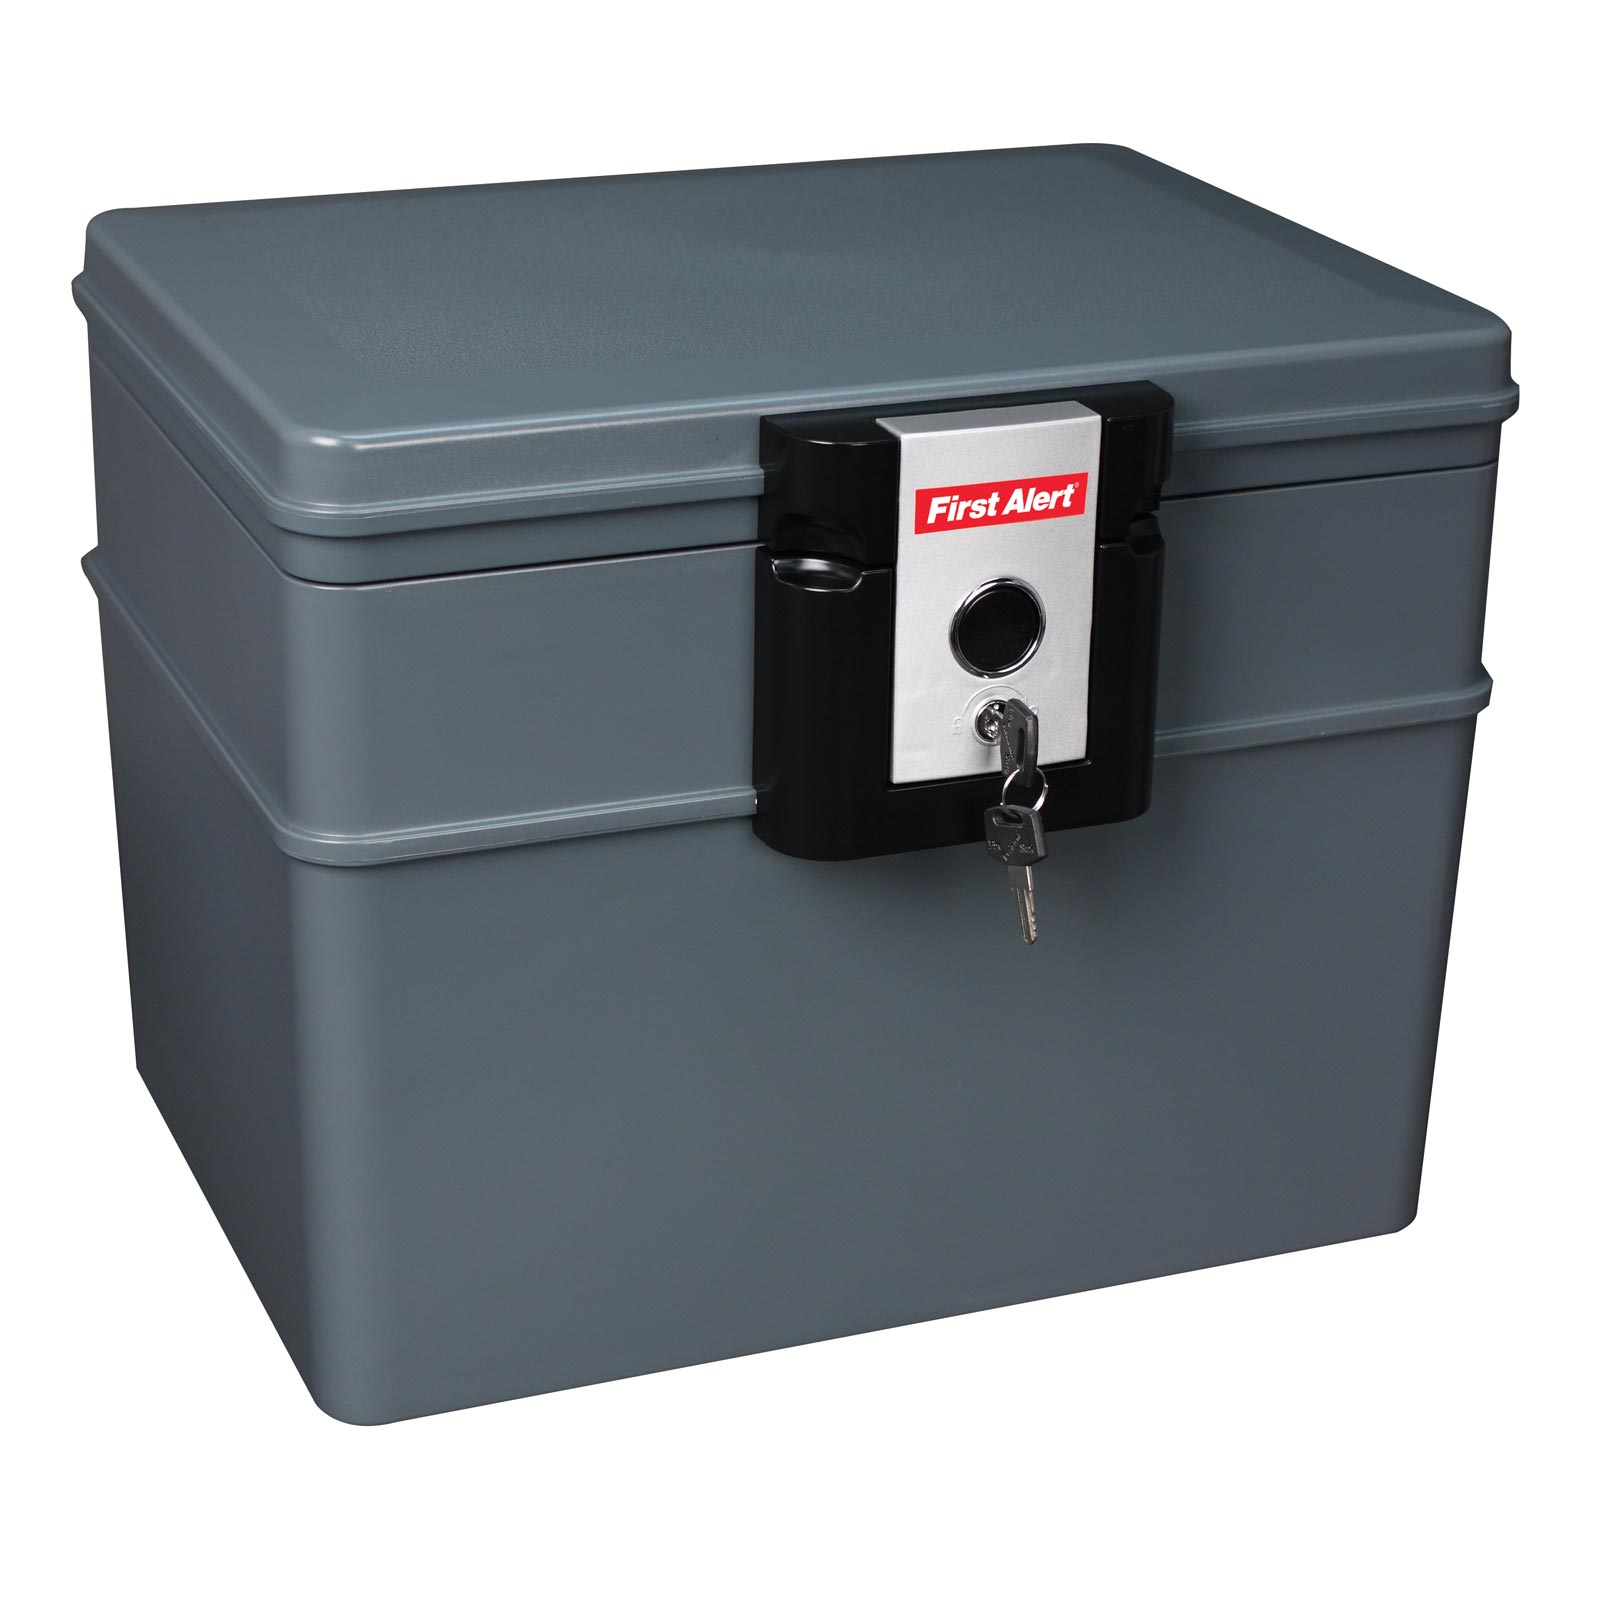 First Alert 2037F Chest Fire/Water Chest w/ Key Lock - .62 Cubic Ft